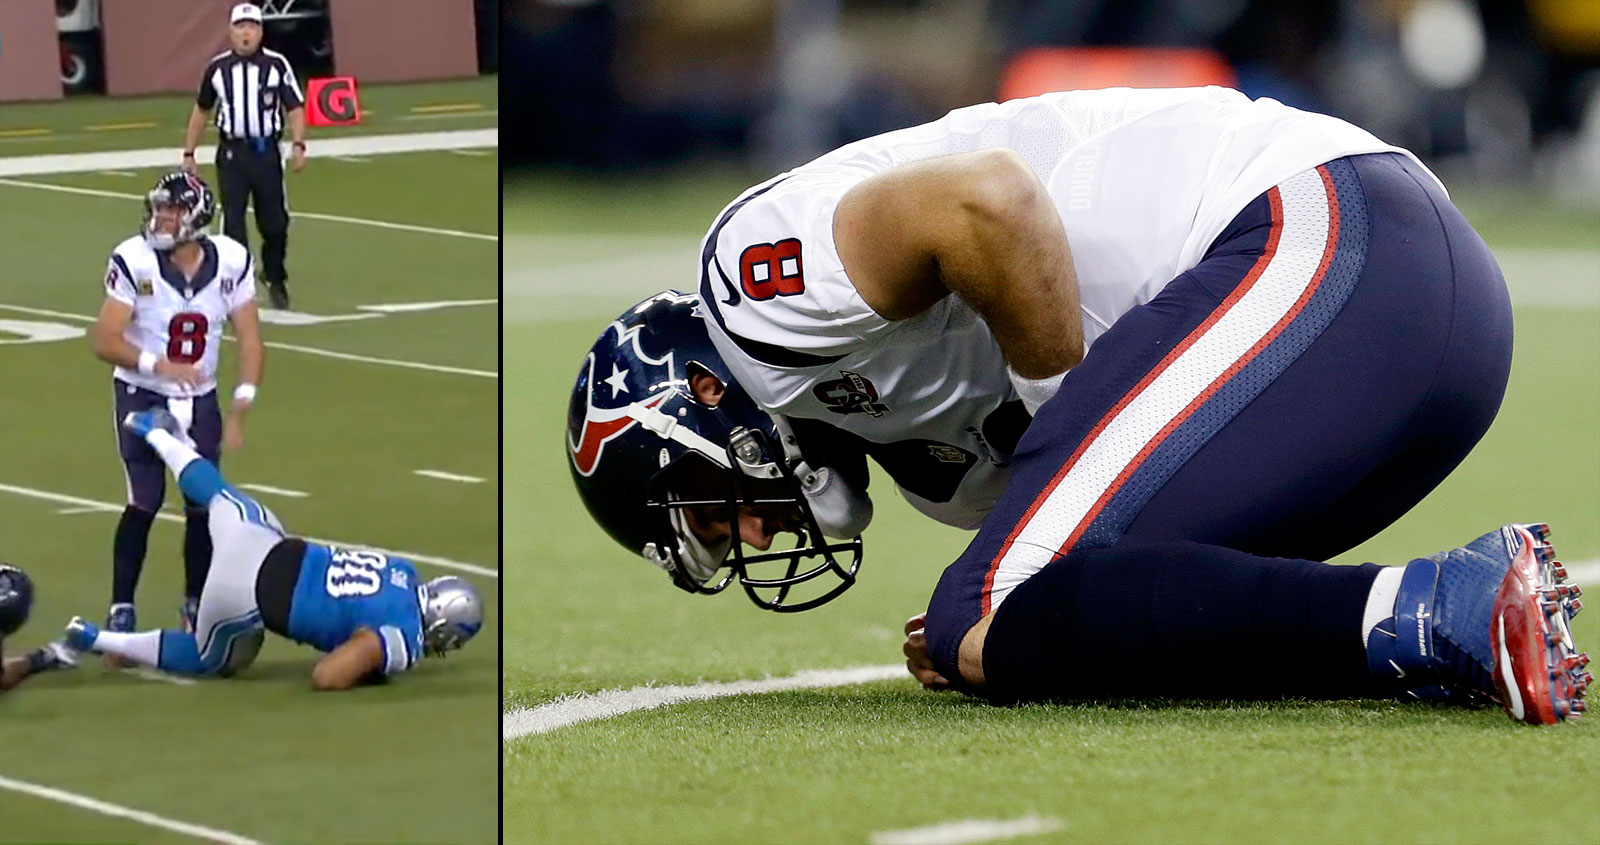 Suh was fined $30,000 for kicking Houston quarterback Matt Schaub during a Thanksgiving Day game on Nov. 22, 2012. After Suh was taken to the ground, his foot swung toward Schaub and hit him in the groin area.